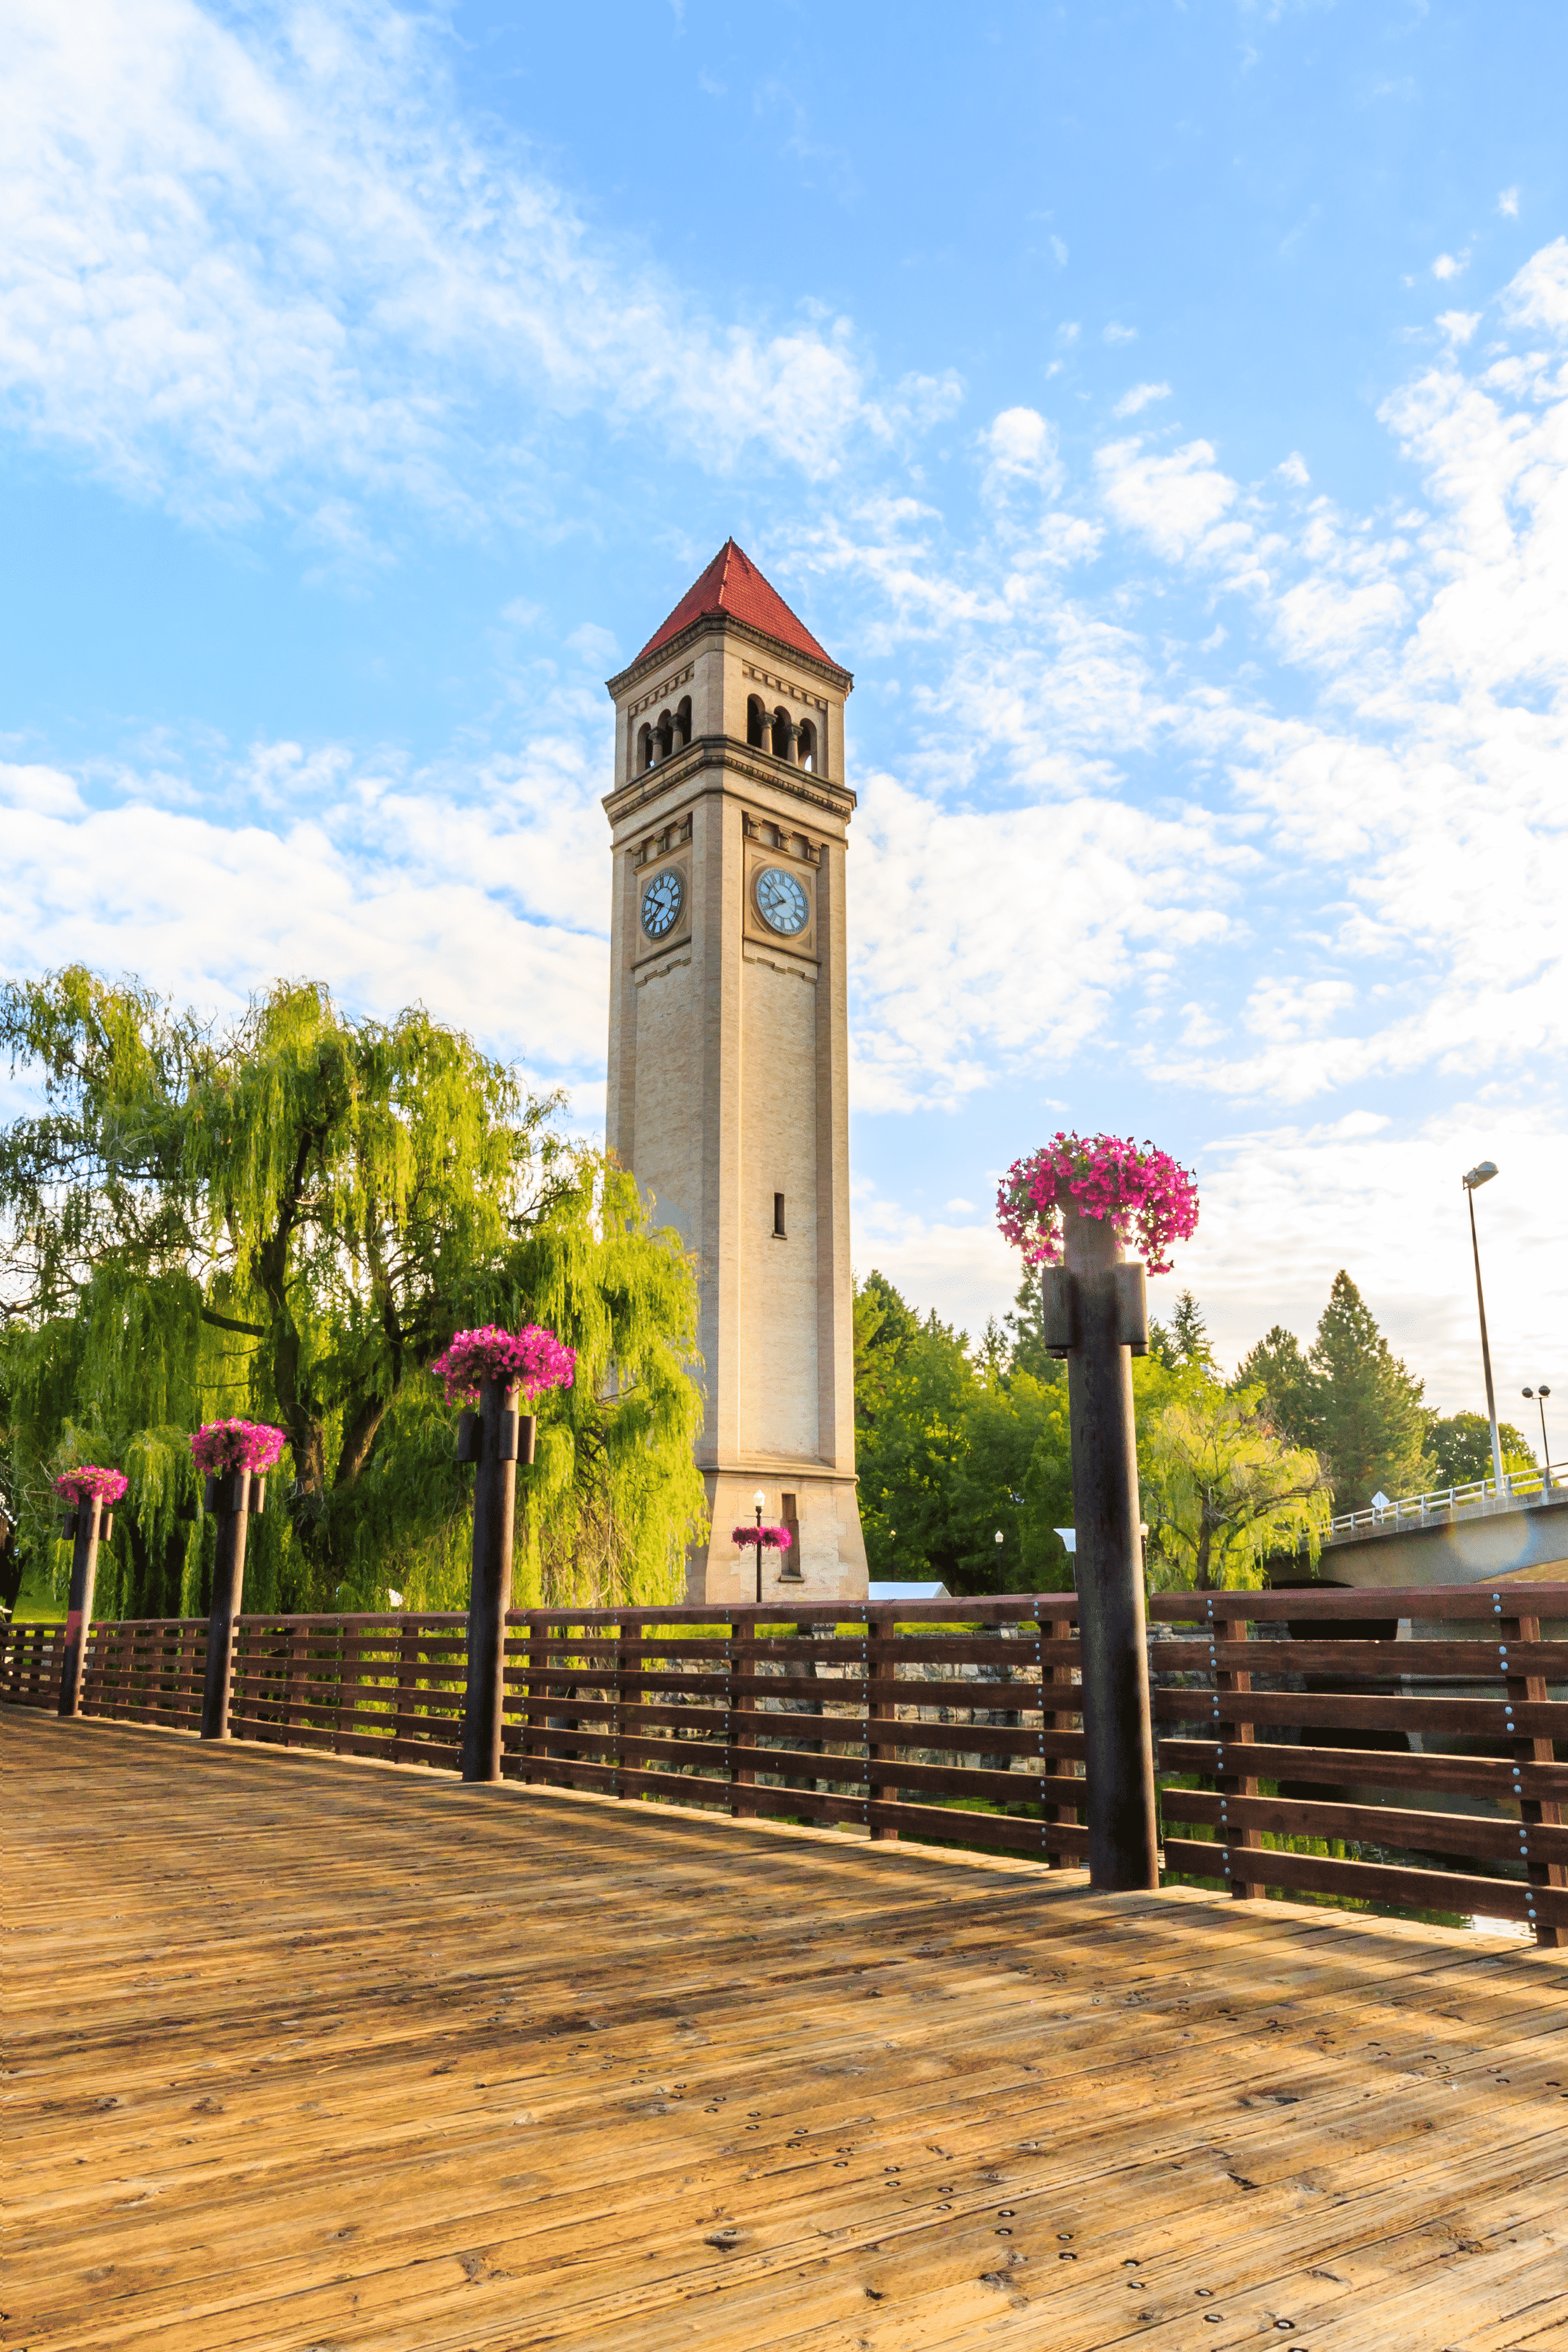 The Spokane clock tower surrounded by flowers and tree.